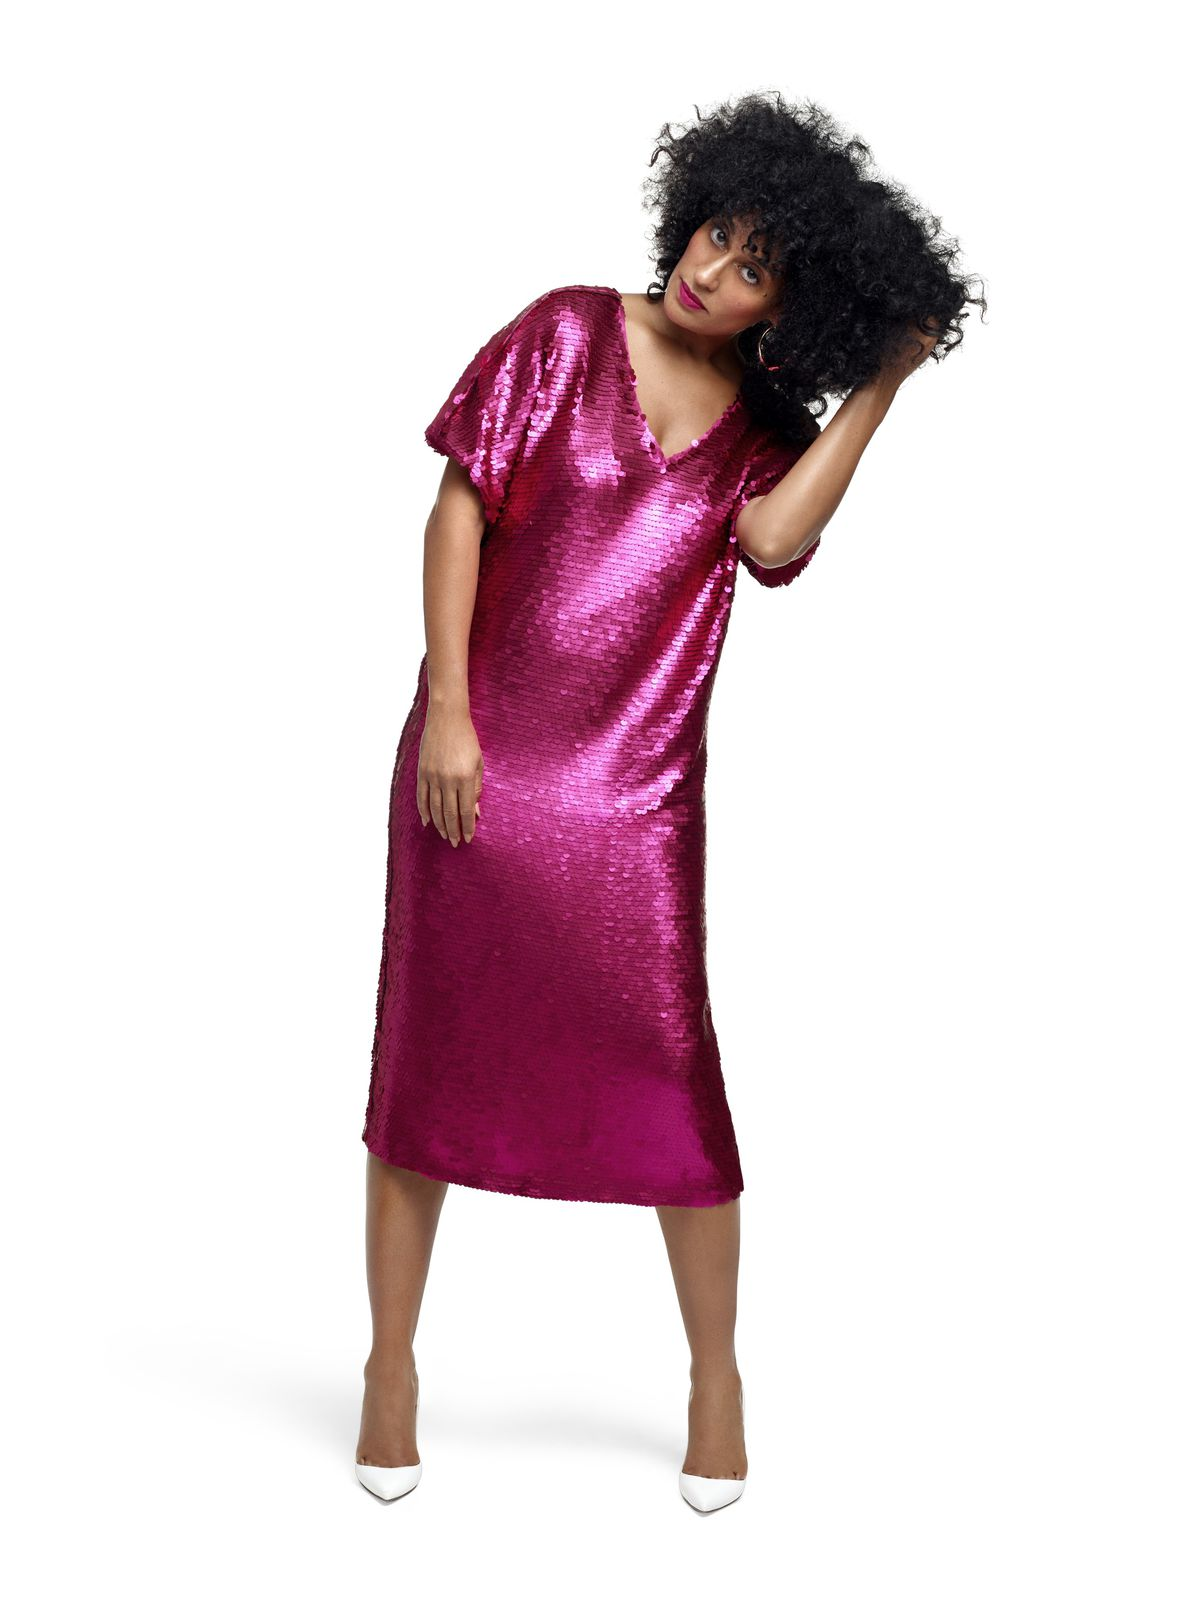 a515201d4f4 Tracee Ellis Ross in Tracee Ellis Ross x JC Penny sweatsuit and heels and sequined  dress